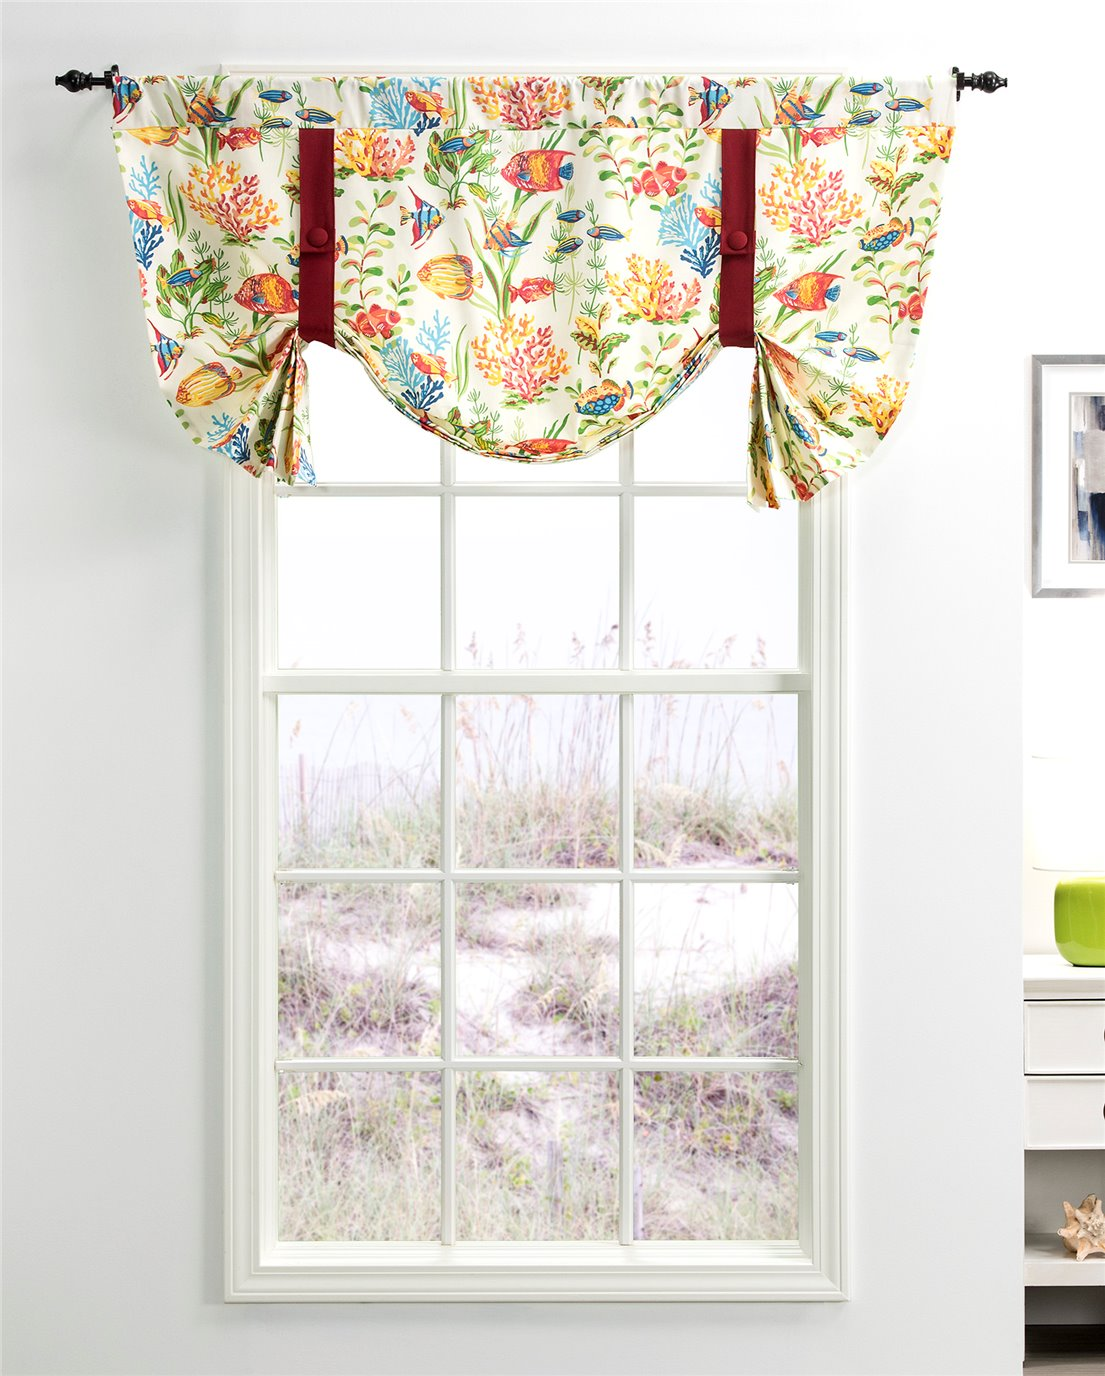 West Bay Tie Up Curtain